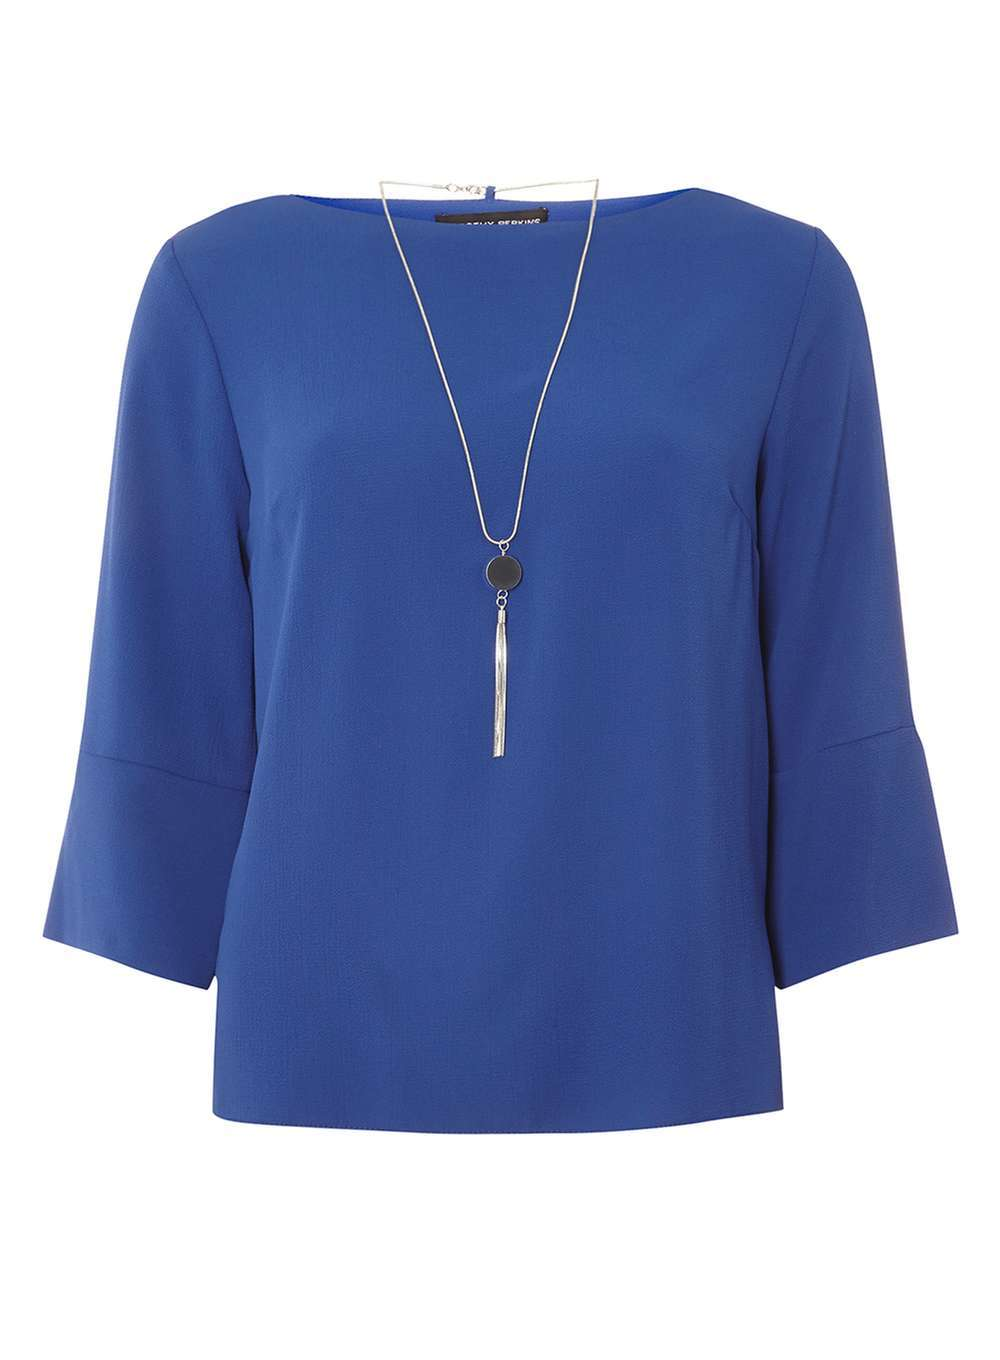 Womens Cobalt Chain Neck Top Cobalt - neckline: slash/boat neckline; pattern: plain; predominant colour: royal blue; occasions: work; length: standard; style: top; fibres: polyester/polyamide - stretch; fit: straight cut; sleeve length: 3/4 length; sleeve style: standard; texture group: sheer fabrics/chiffon/organza etc.; pattern type: fabric; season: a/w 2016; wardrobe: highlight